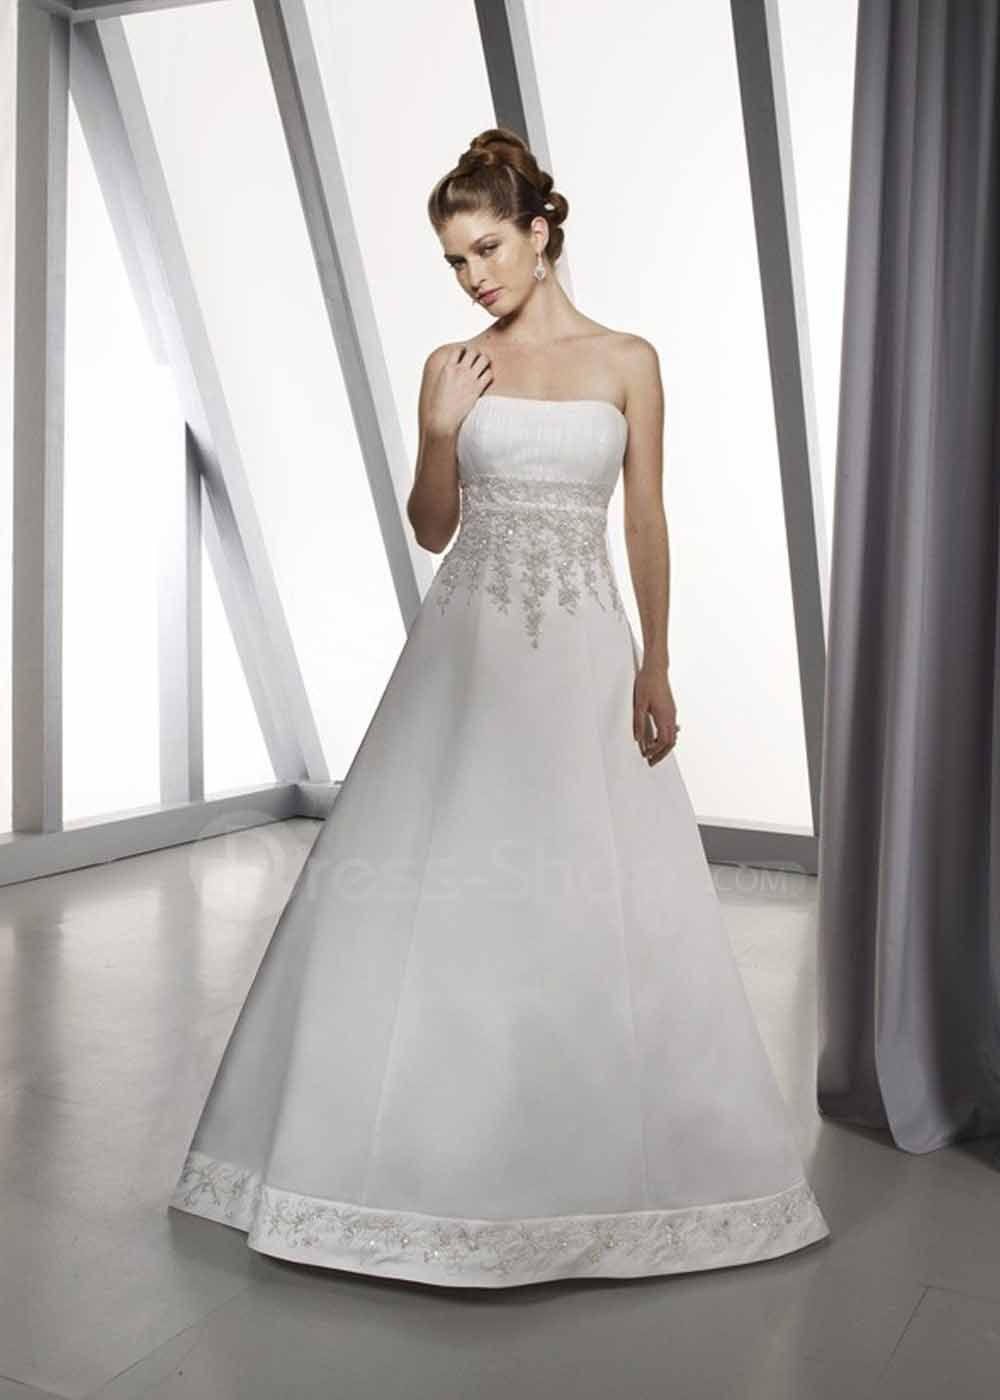 A Line Wedding Gown Elana Walker Presents The Art Of I Do Empire Waist Gowns